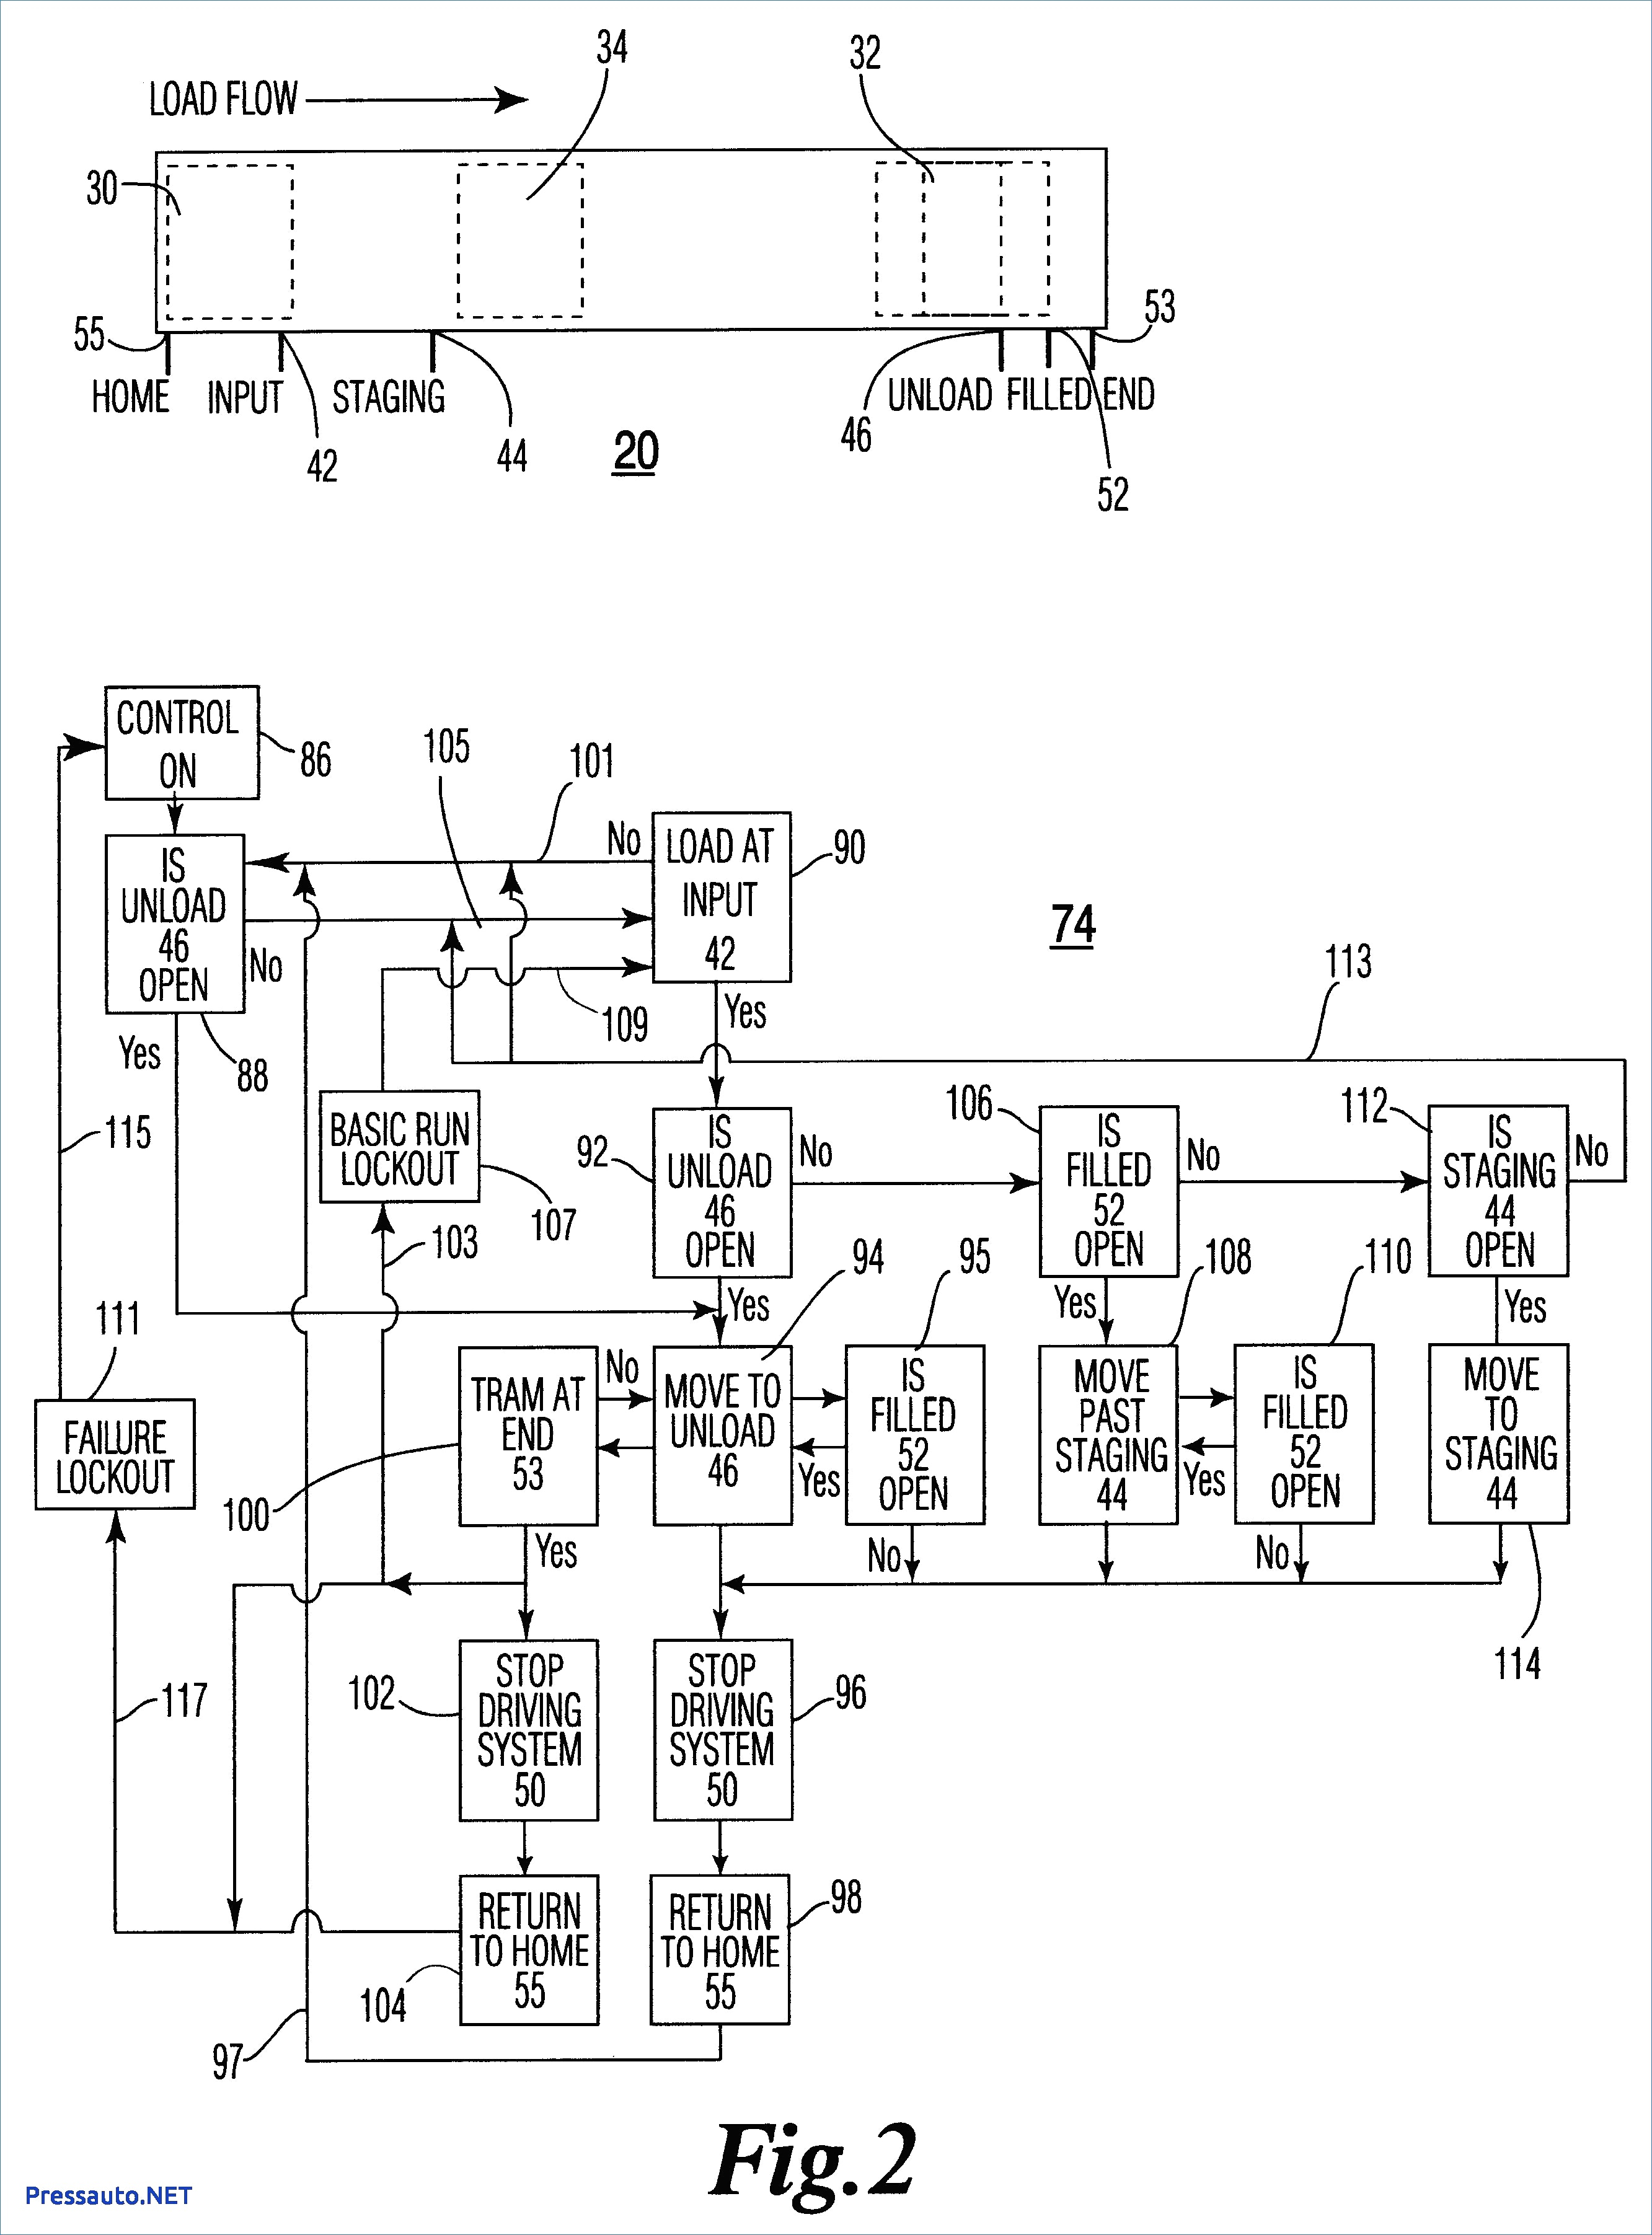 ge buck boost transformer wiring diagram Download-In Acme Buck Boost Transformer Wiring Diagram For Transformers Diagrams 7-q